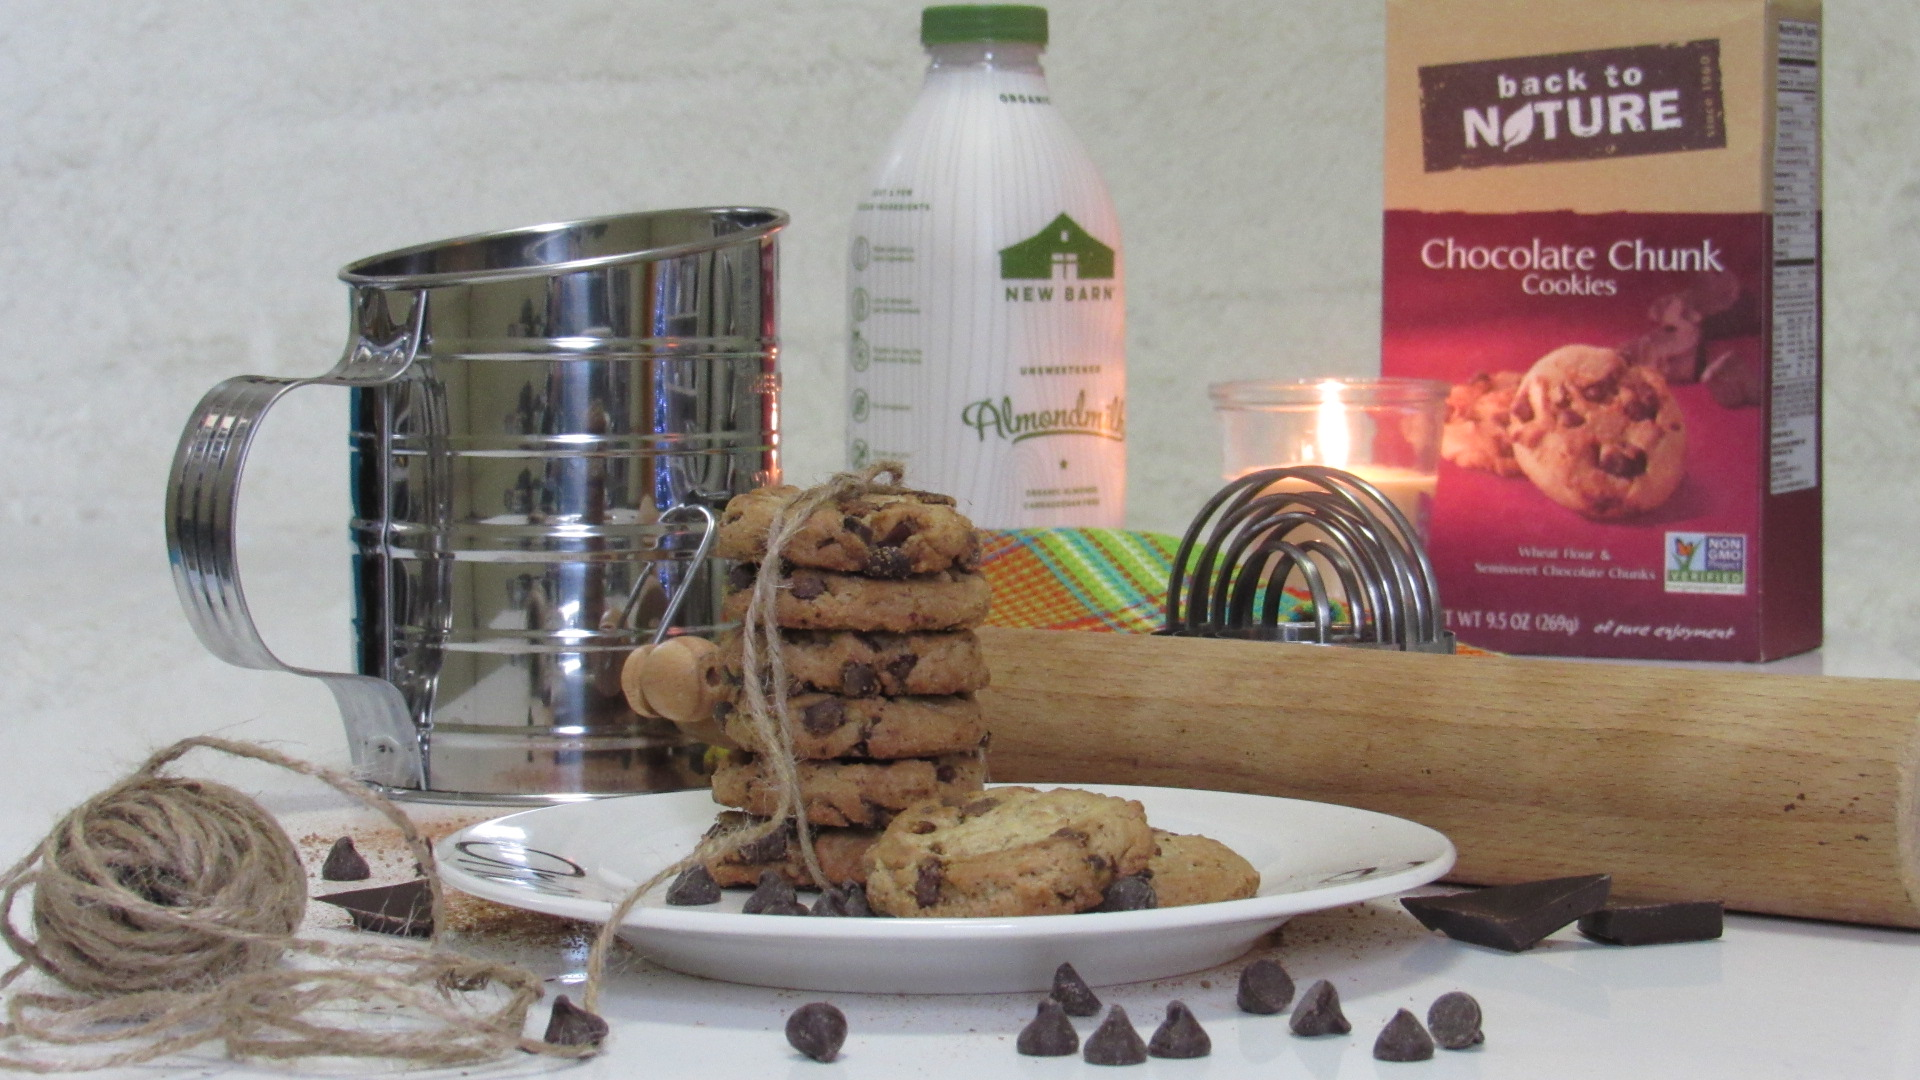 Back To Nature Chocolate Chunk Cookies #momsmeet #glutenfree #ad #cookies #organic